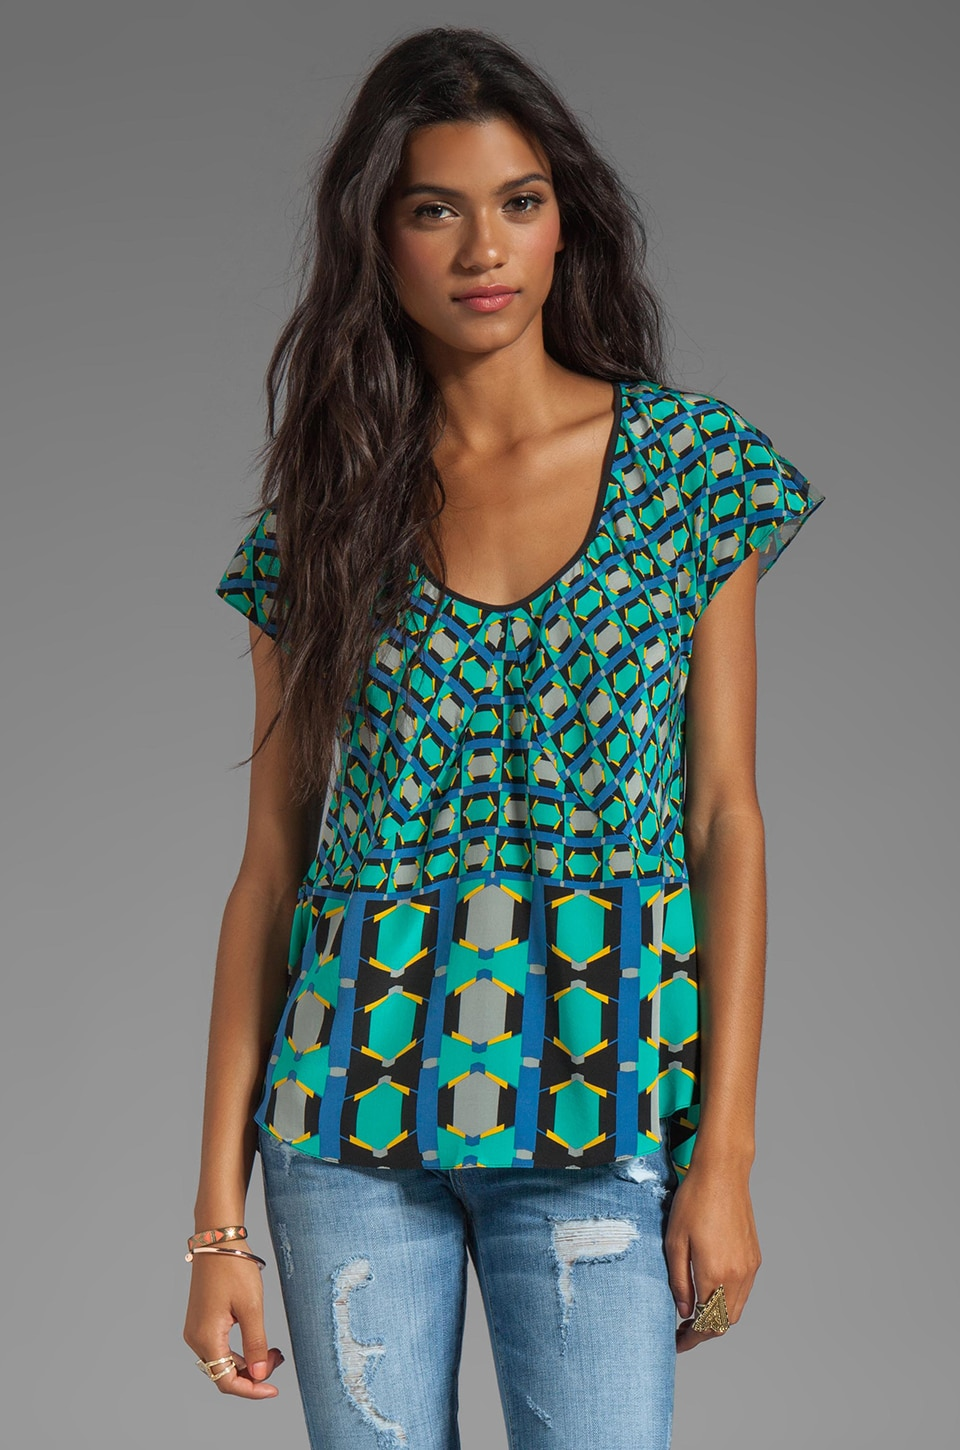 Tracy Reese Silk Prints Combo Blouse in Geometric Tie